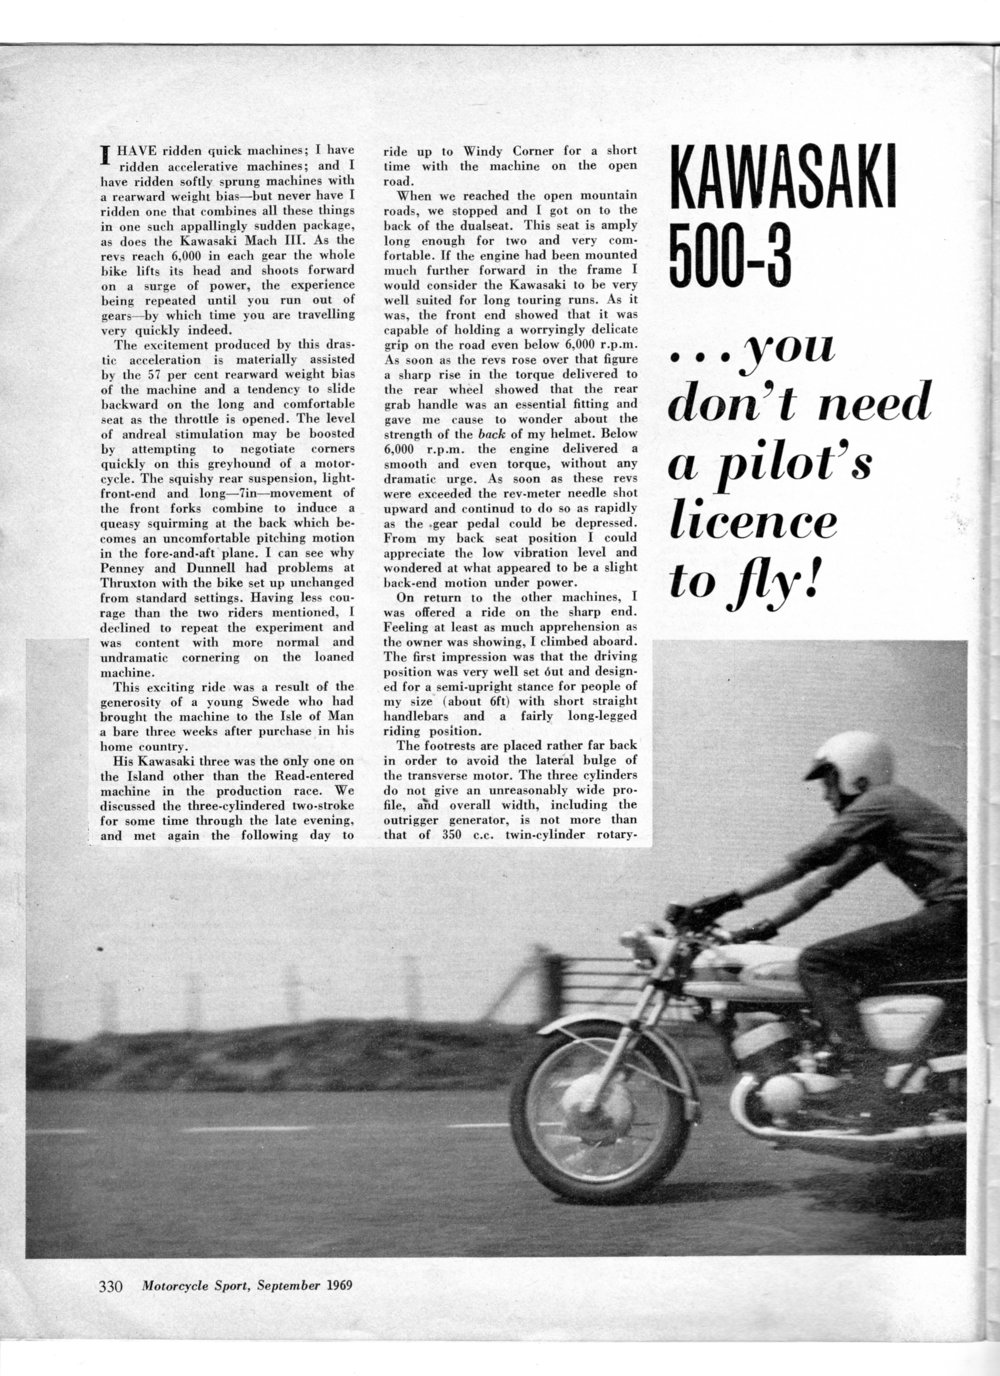 1969 Kawasaki 500-3 road test 1.jpg